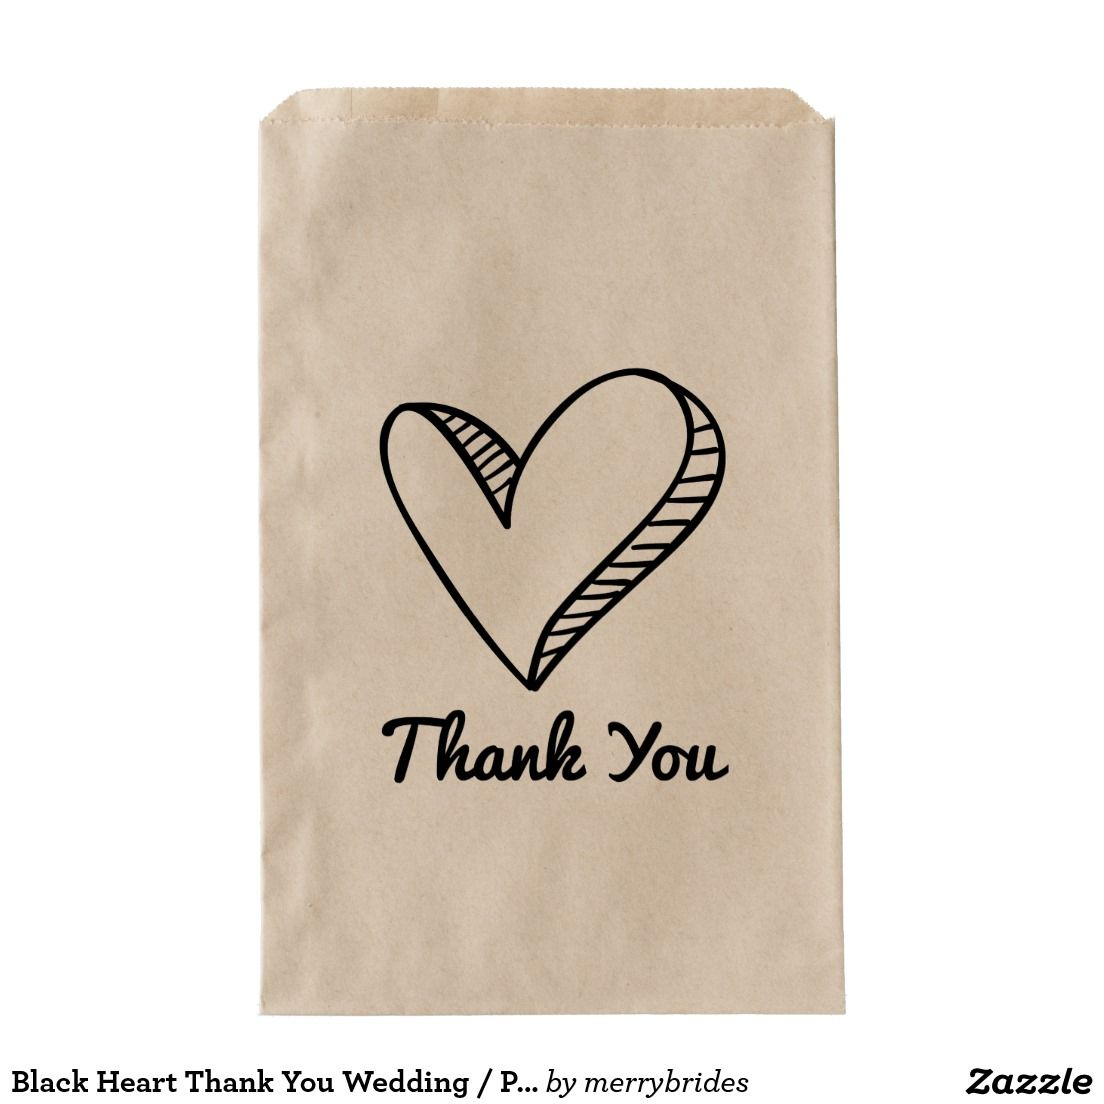 Black Heart Thank You Wedding / Party Favor Bag | Black heart, Favor ...